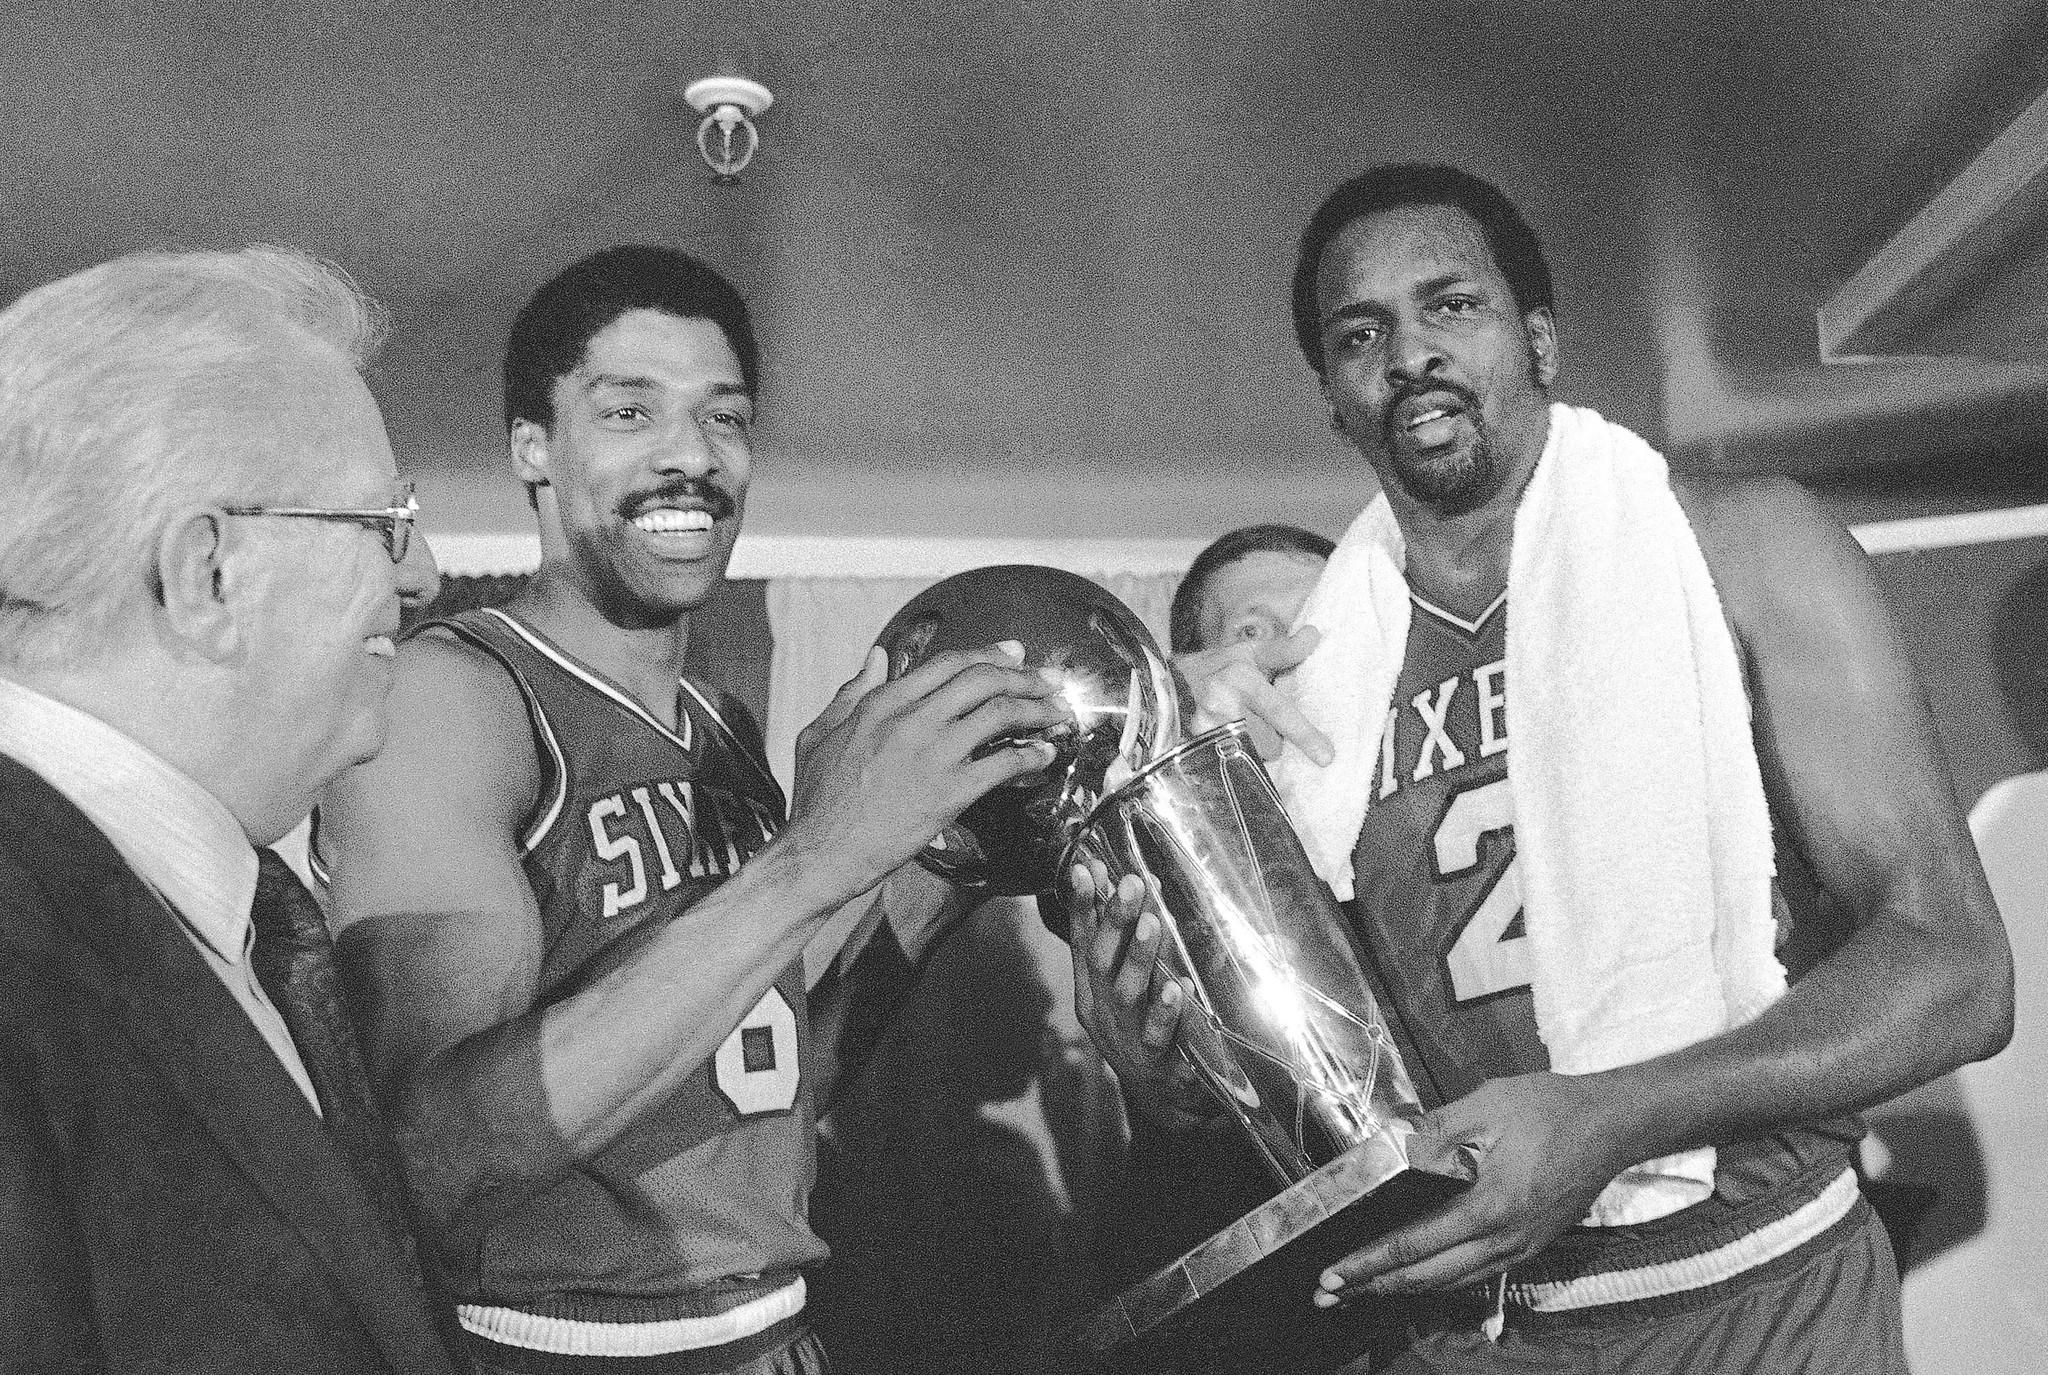 Moses Malone s at 60 one of greatest centers in history of pro